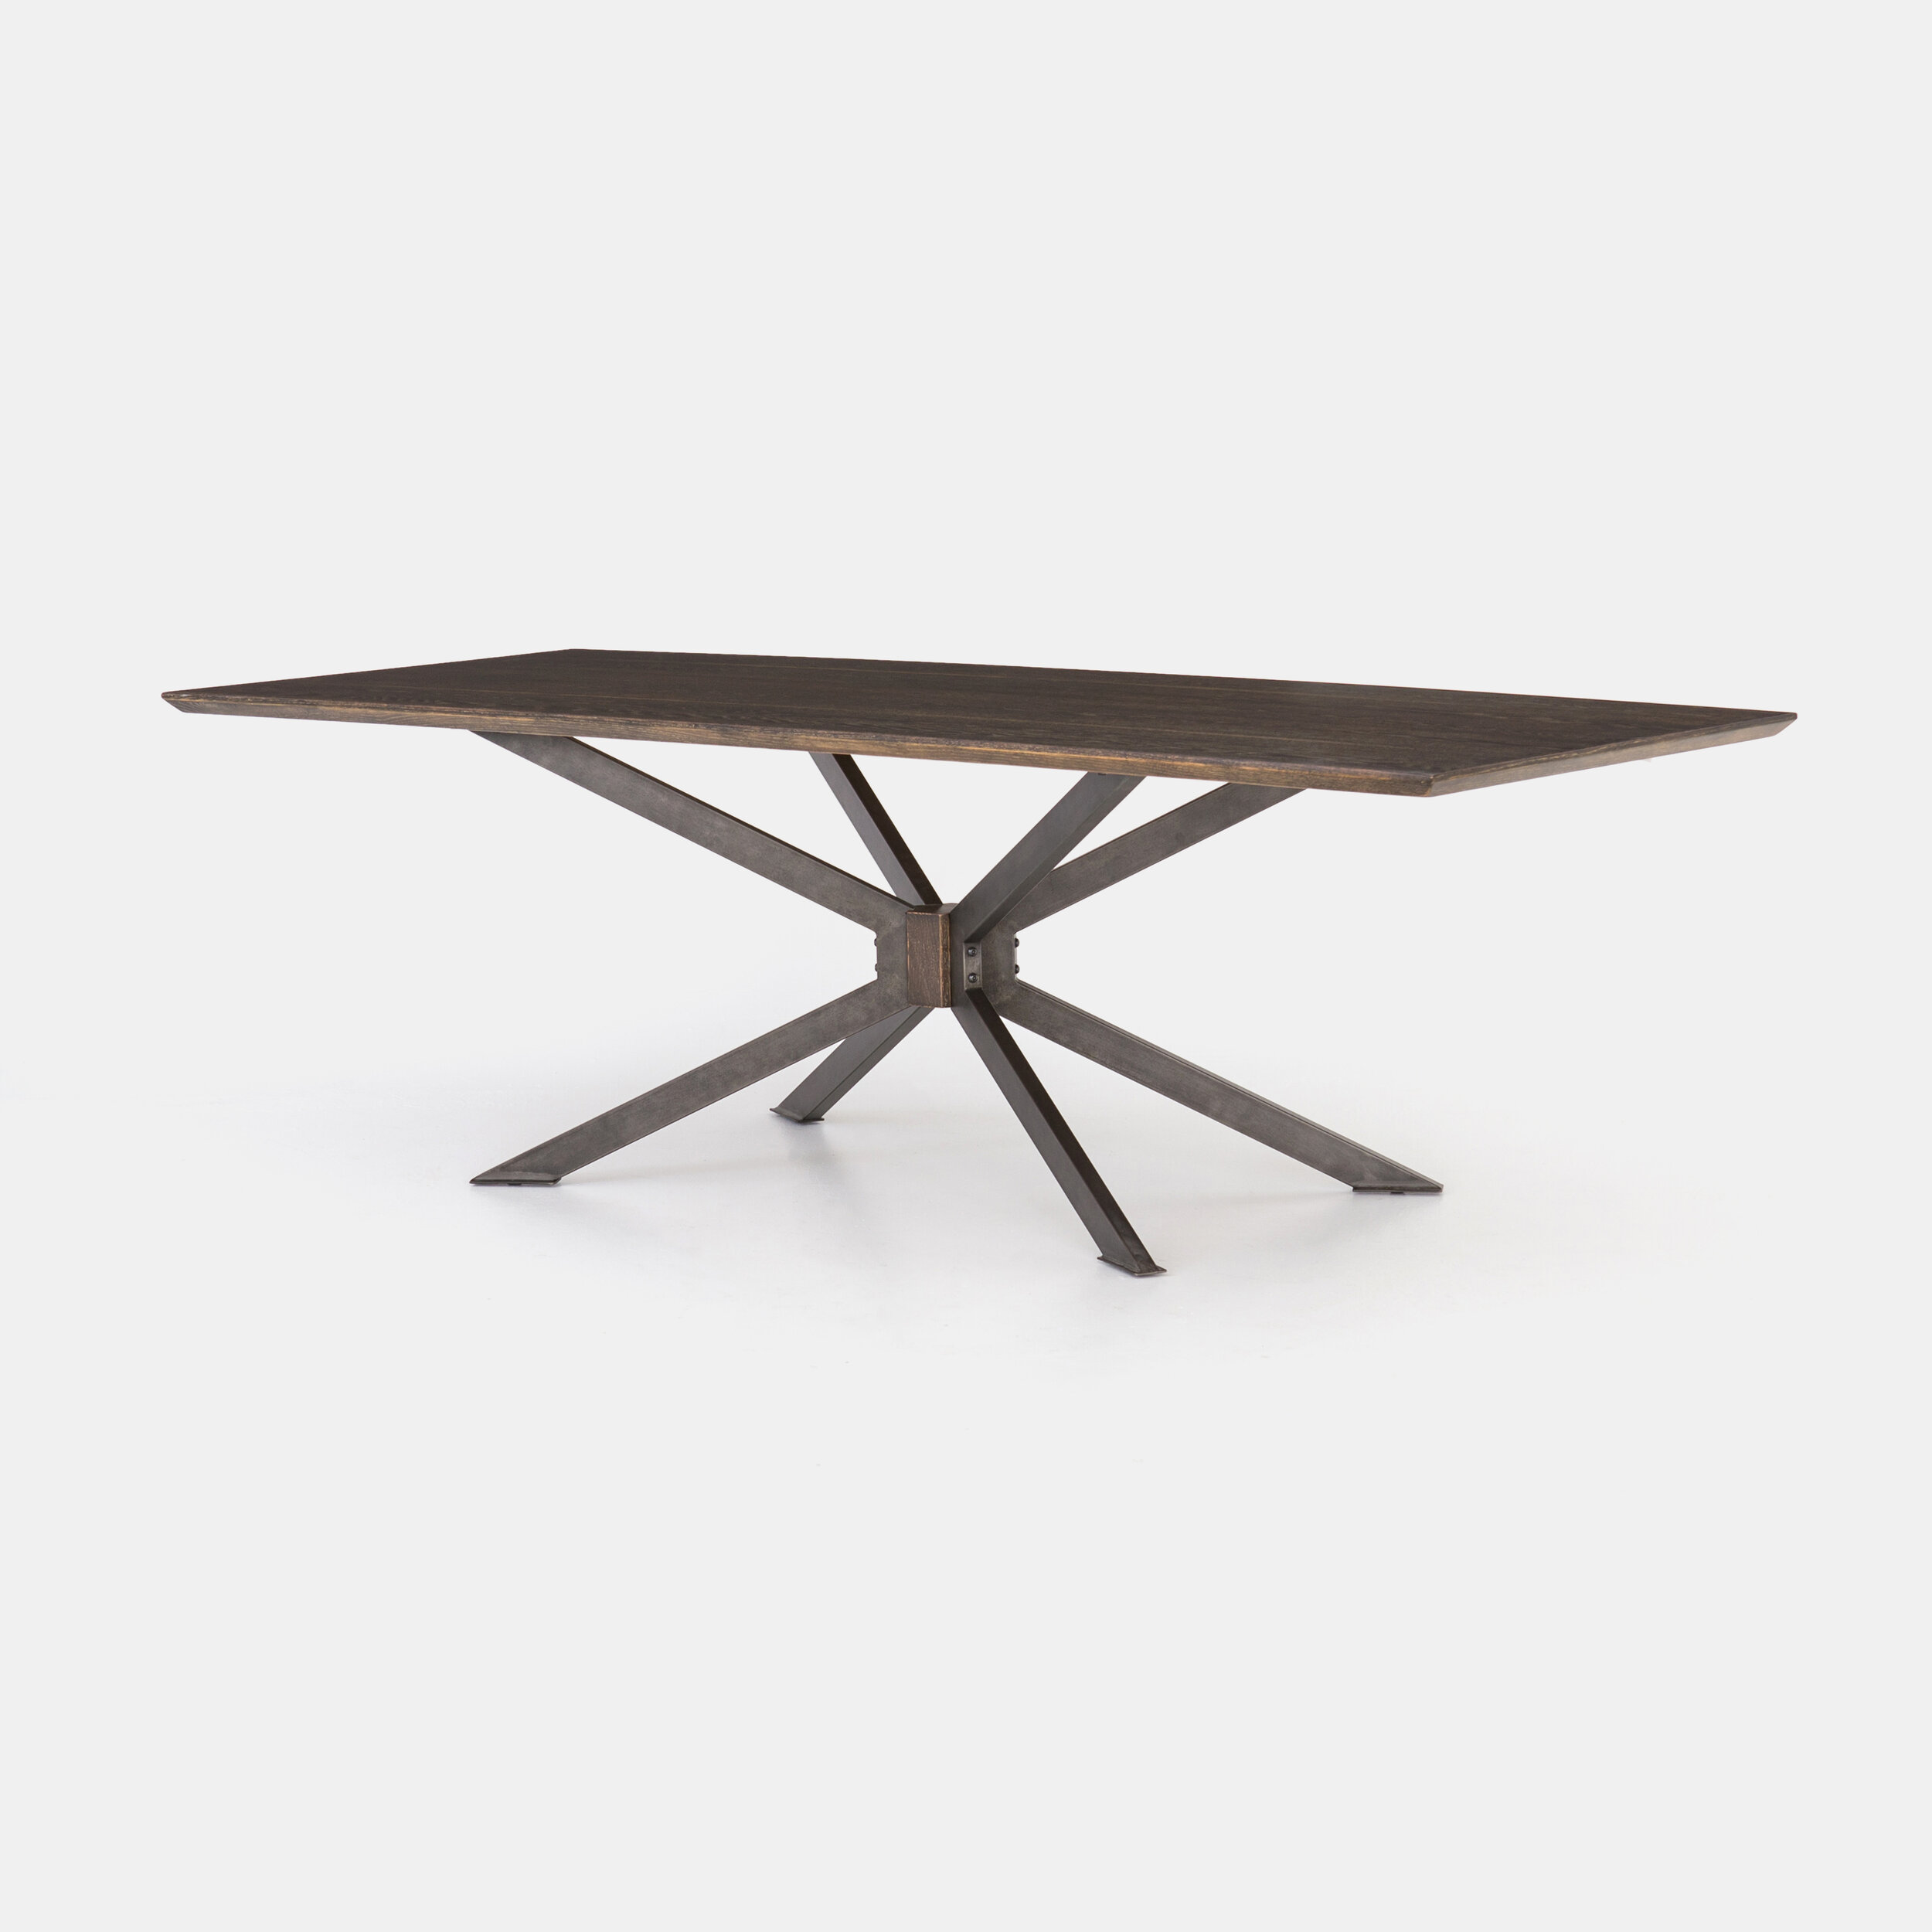 shop-mayker-home-gifting-design-nashville-webb-dining-table.jpg